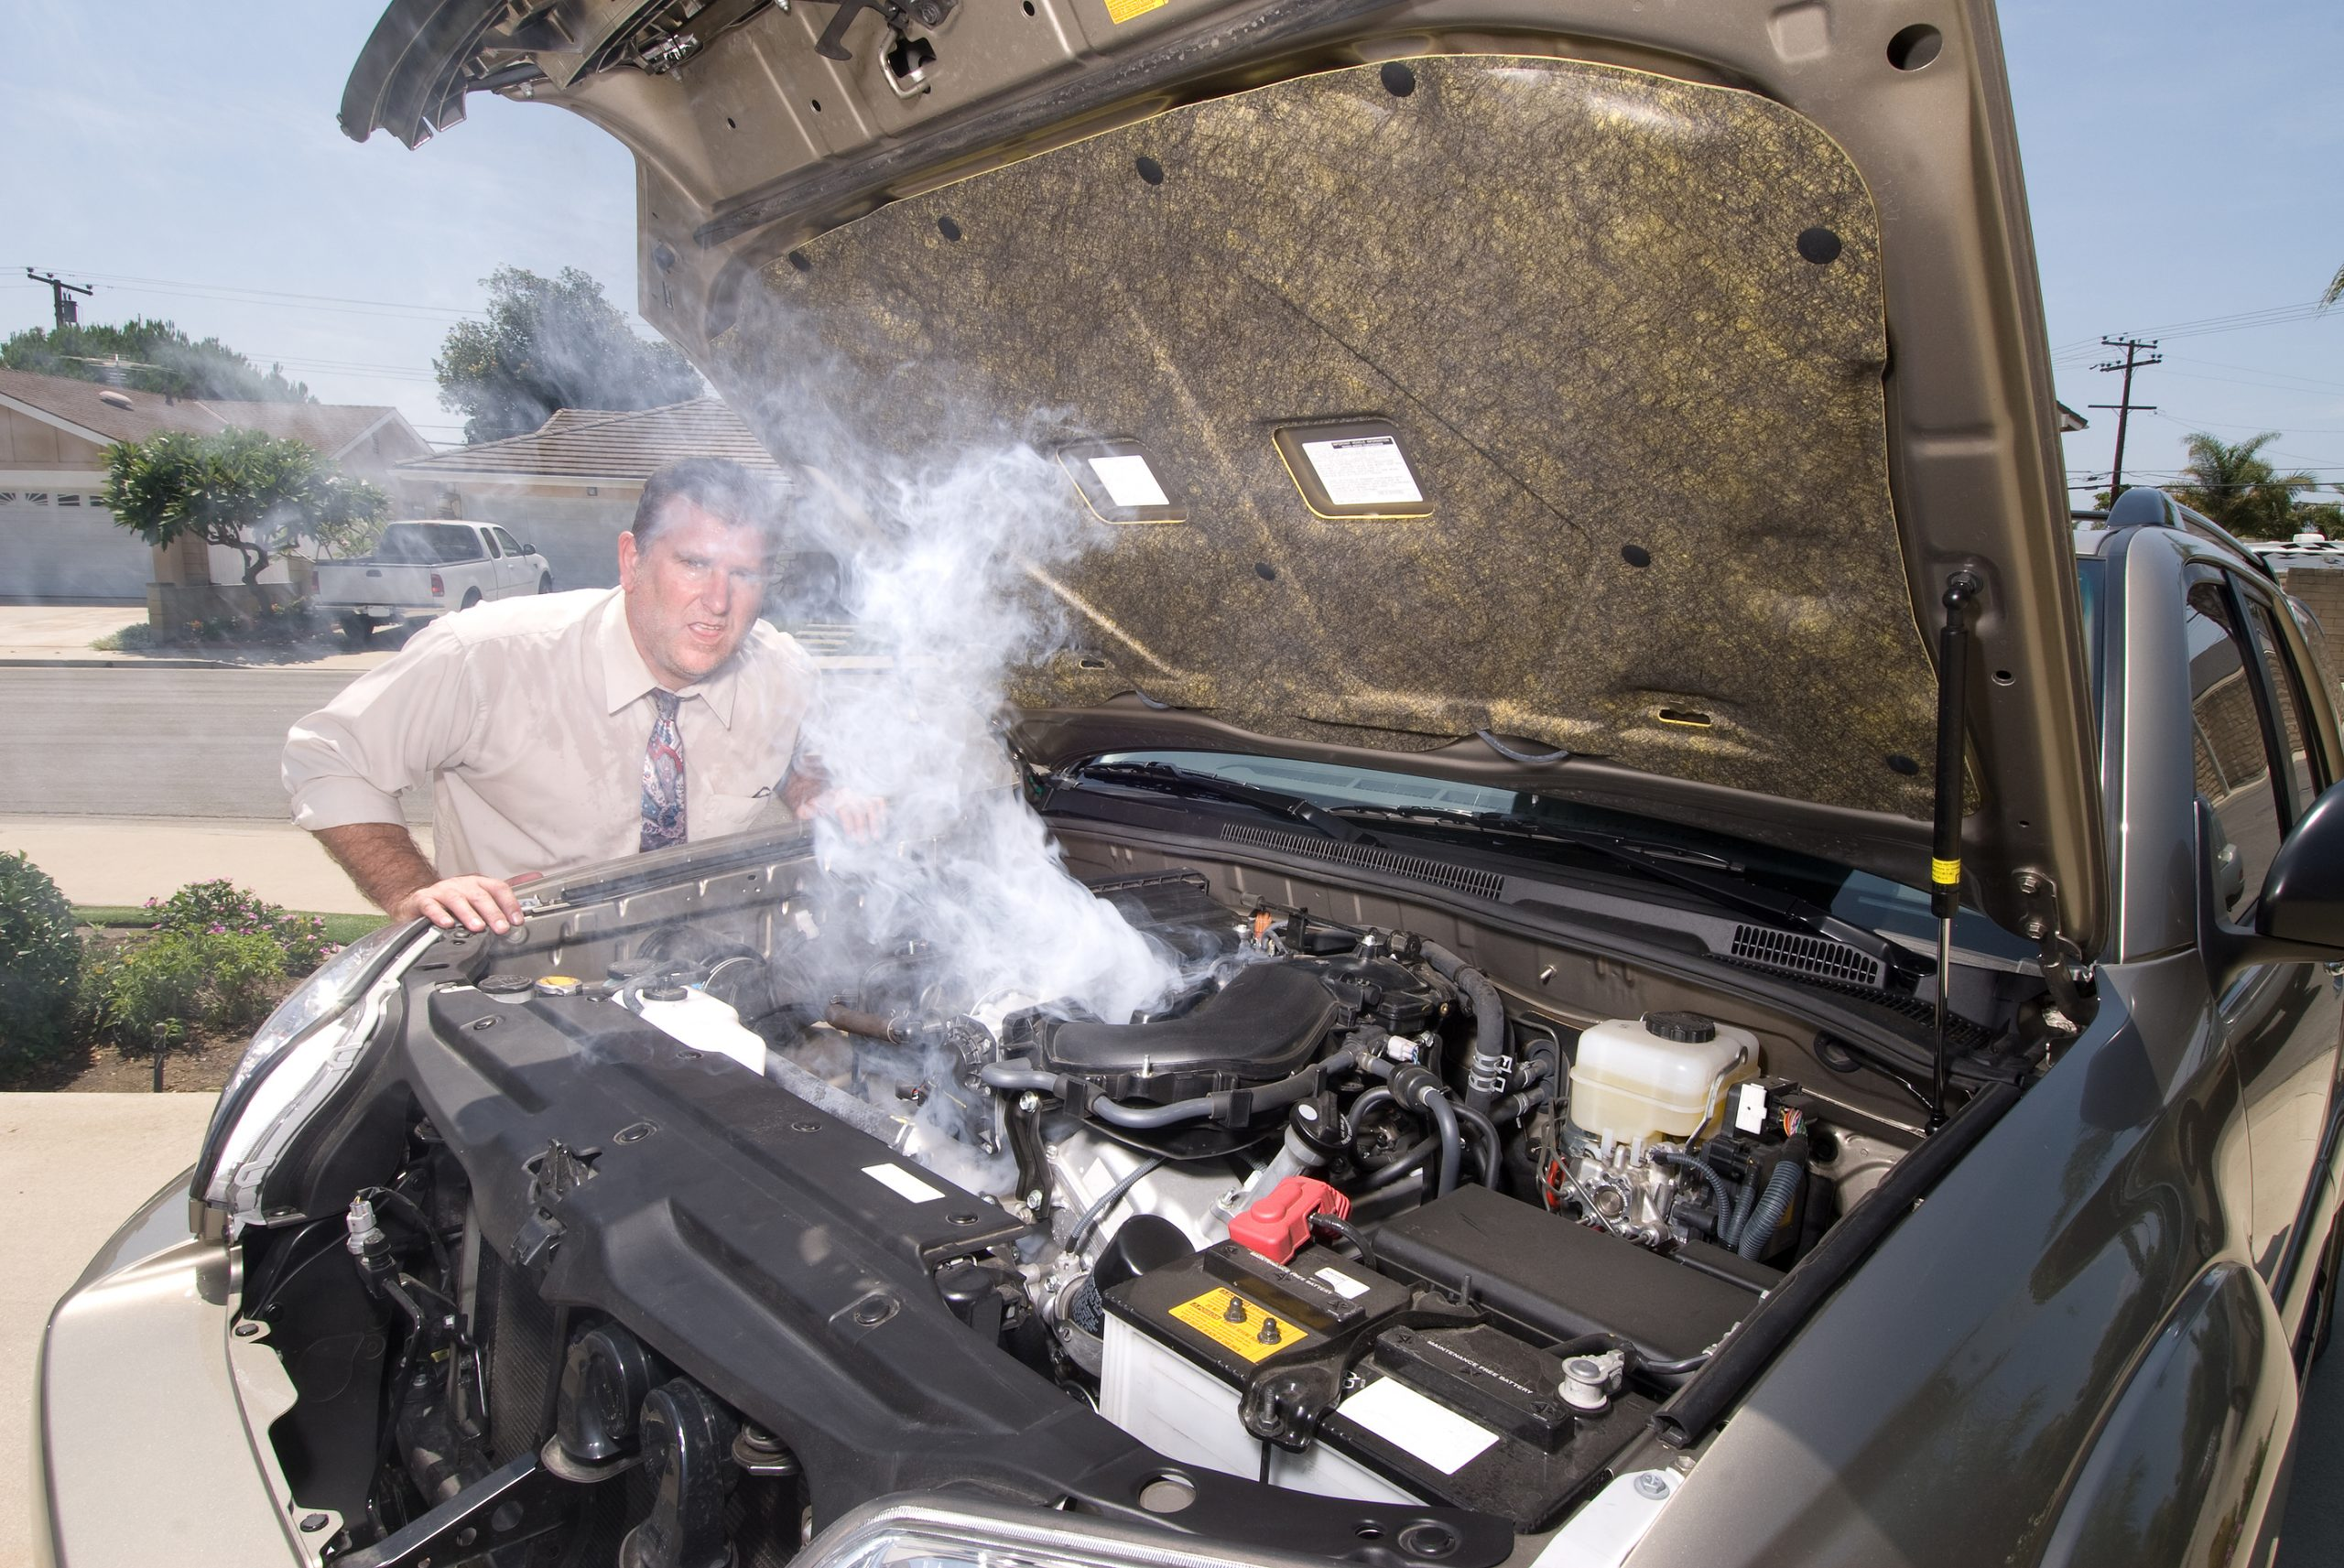 Engine Overheating Causes: Why My Engine Overheats and How Do I Fix It?